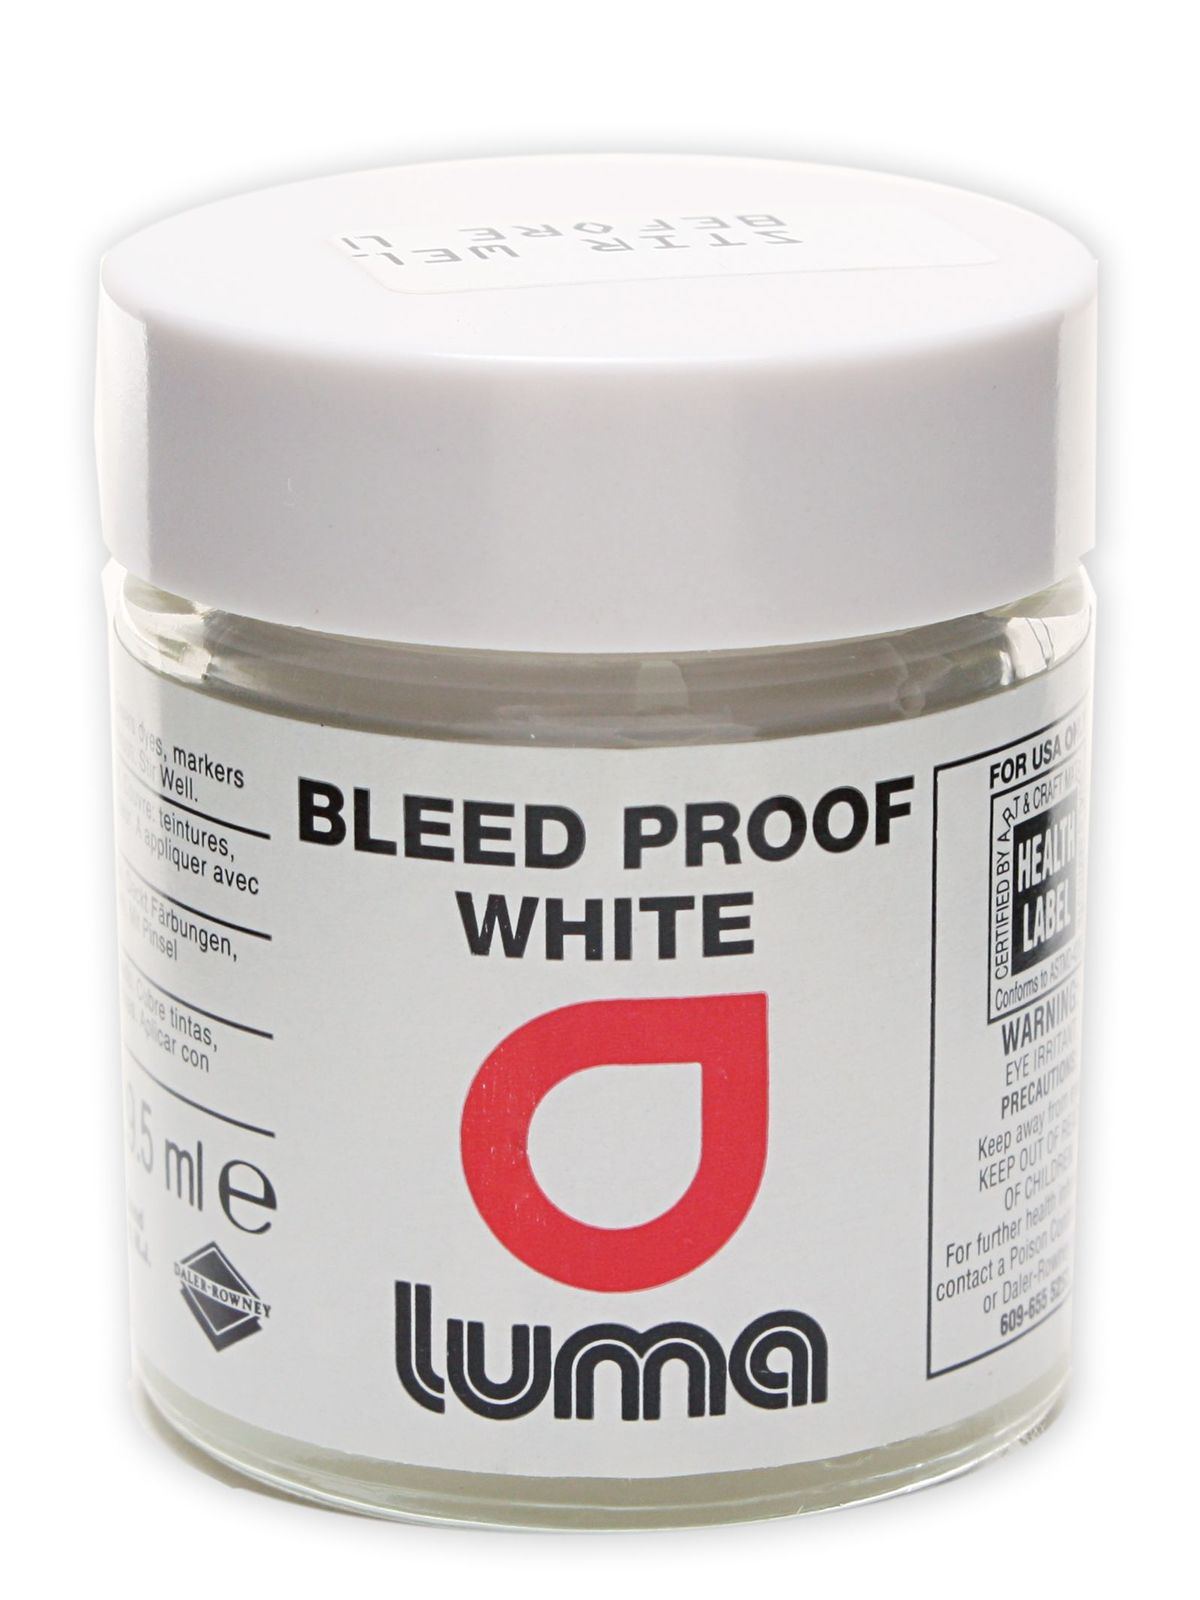 Luma Bleed Proof White